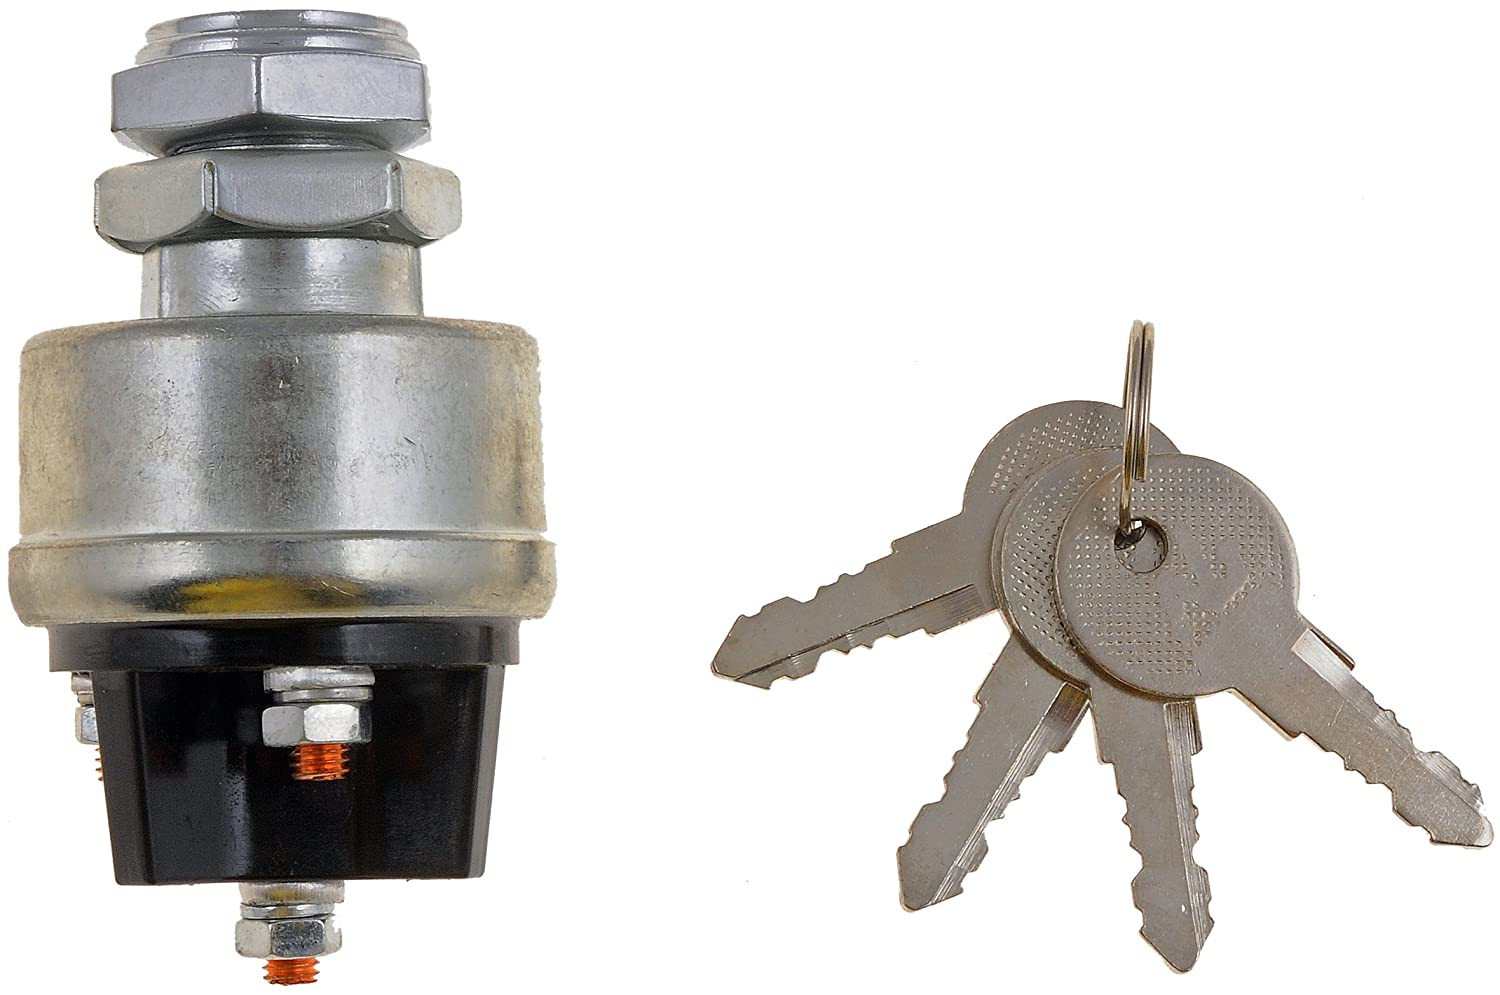 Amazon.com: Dorman 85936 Conduct Tite Universal Key Starter Switch:  Automotive